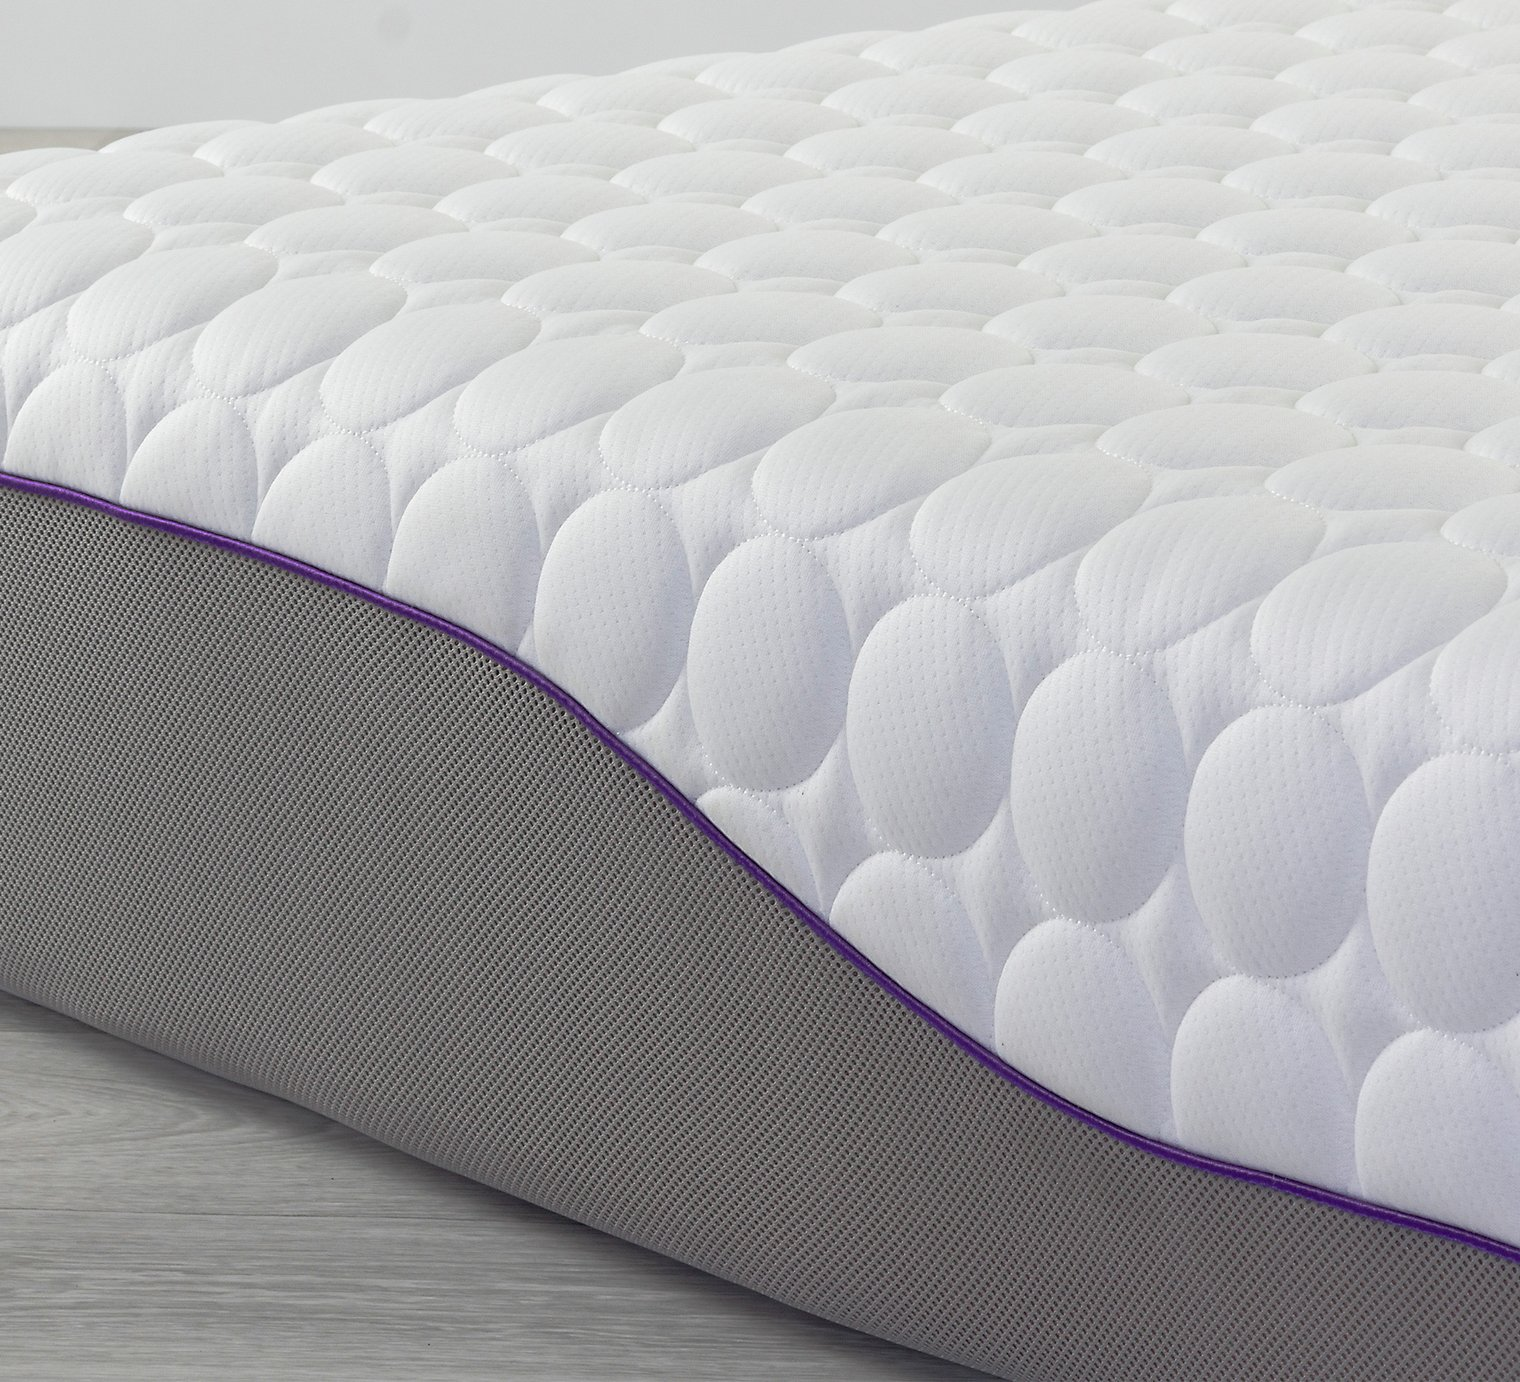 Mammoth Rise Advance Superking Mattress